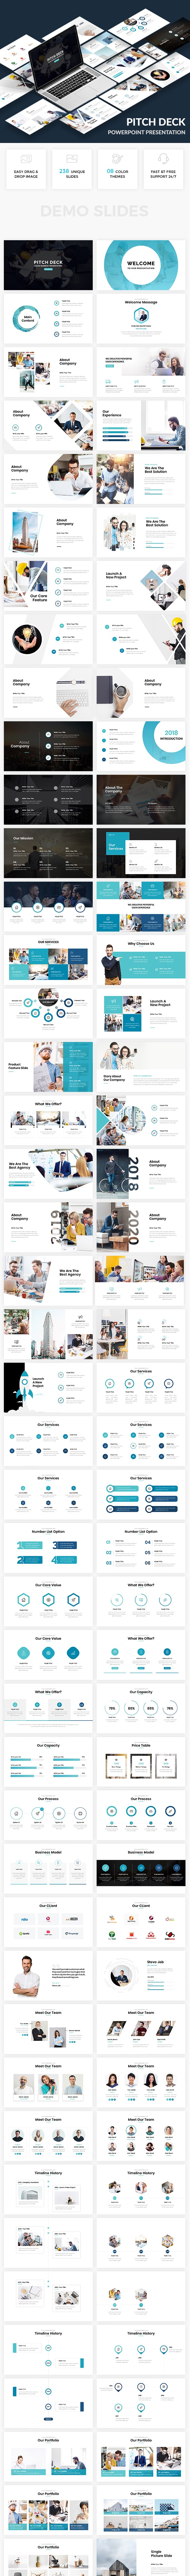 Bundle 2 in 1  Clean Business Powerpoint Template 2018 - Business PowerPoint Templates